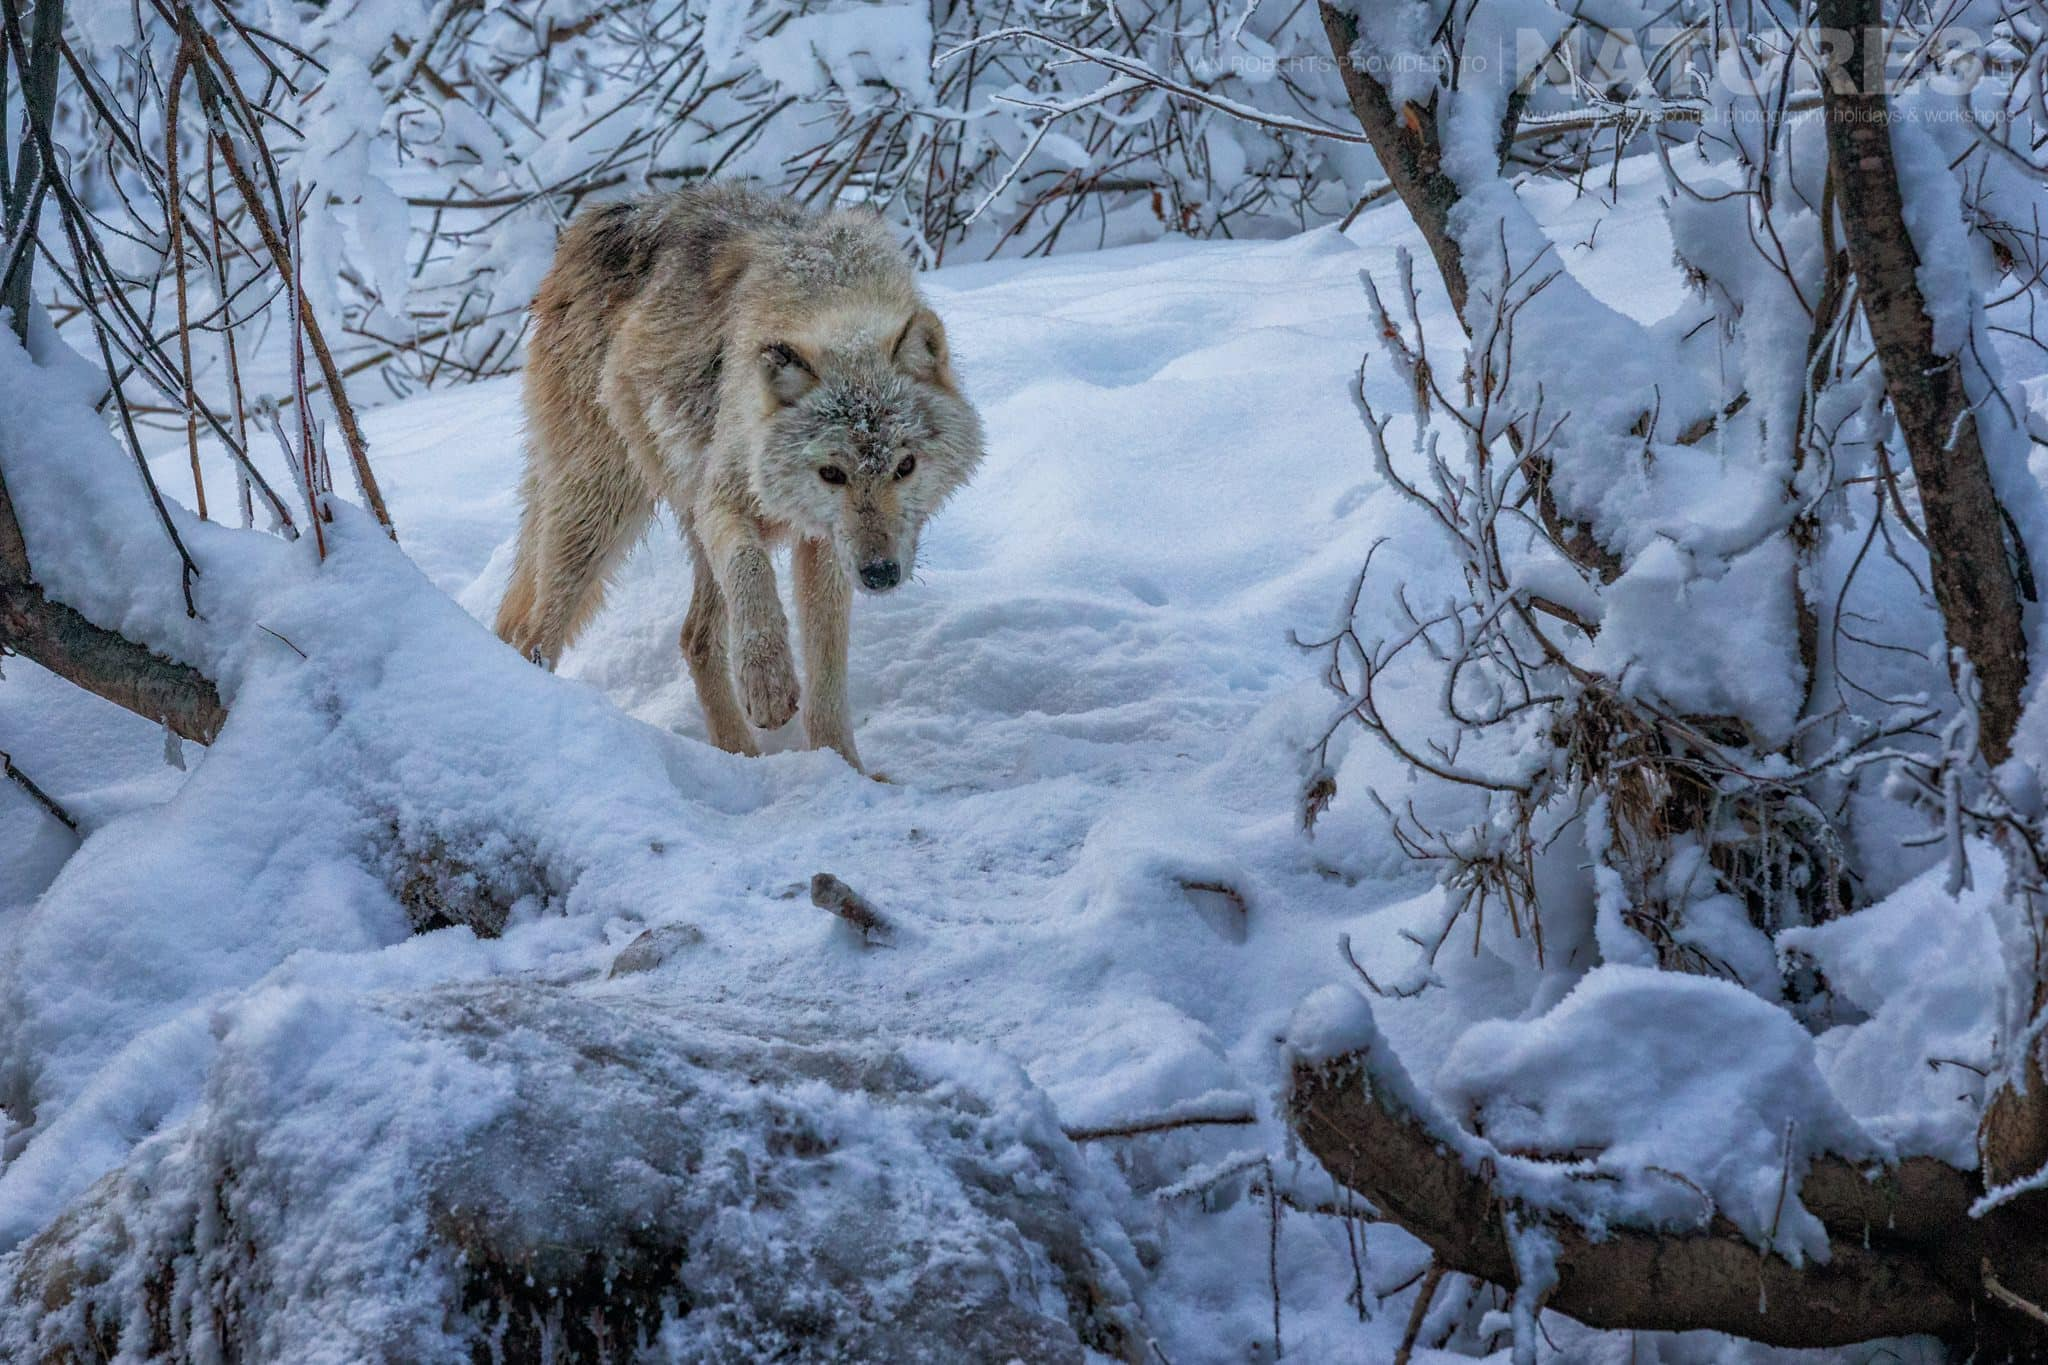 A Gray Wolf Searches For Food   Captured During The Natureslens Ice Grizzlies Of The Yukon Photography Holiday